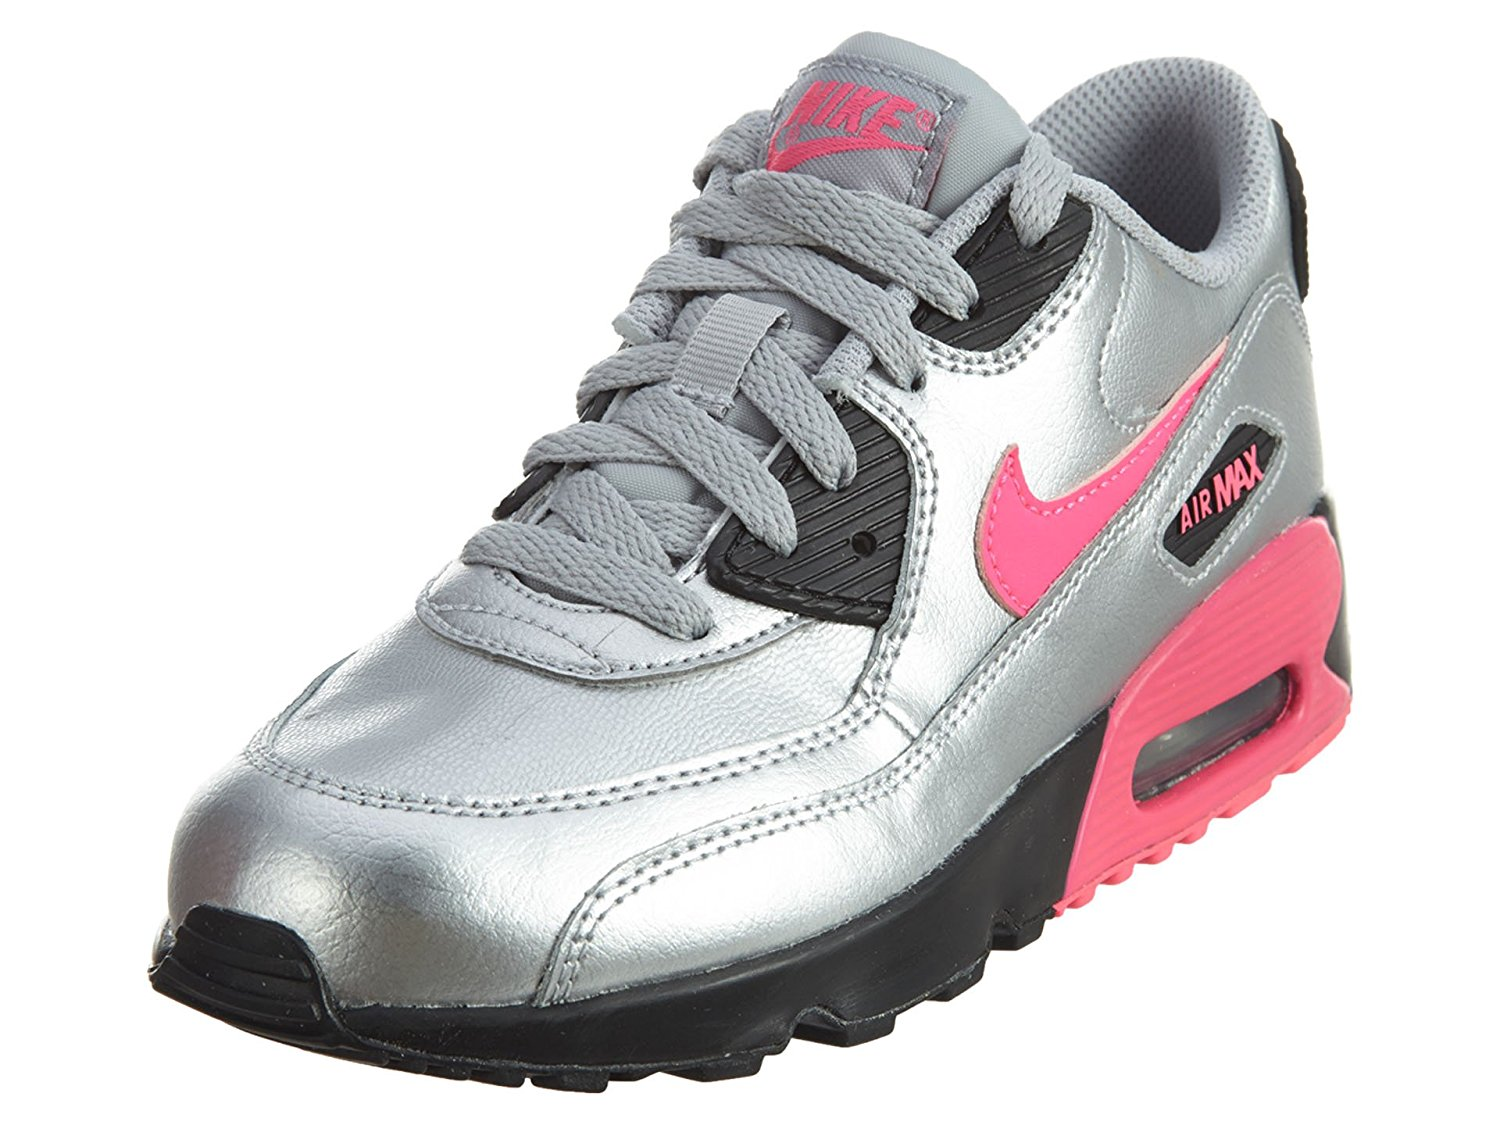 discount 95775 24b52 Nike Nike Air Max 90 Ltr Little Kids Style   833377 Big Kids 833377-004